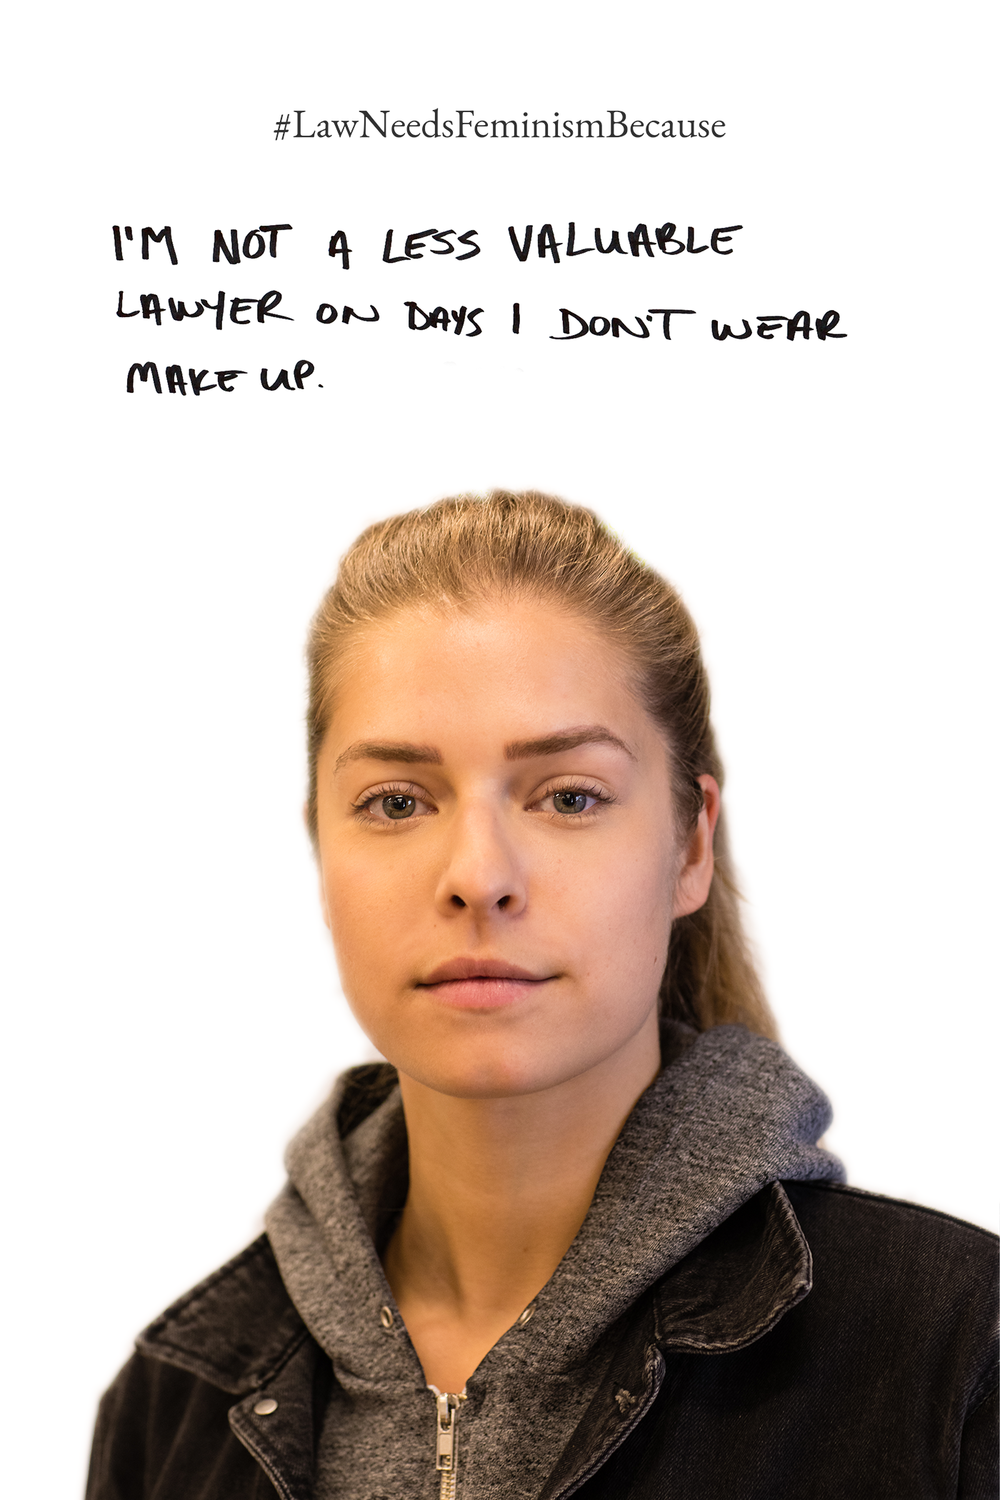 Law Needs Feminism Because  I'm not a less valuable lawyer on days I don't wear makeup.